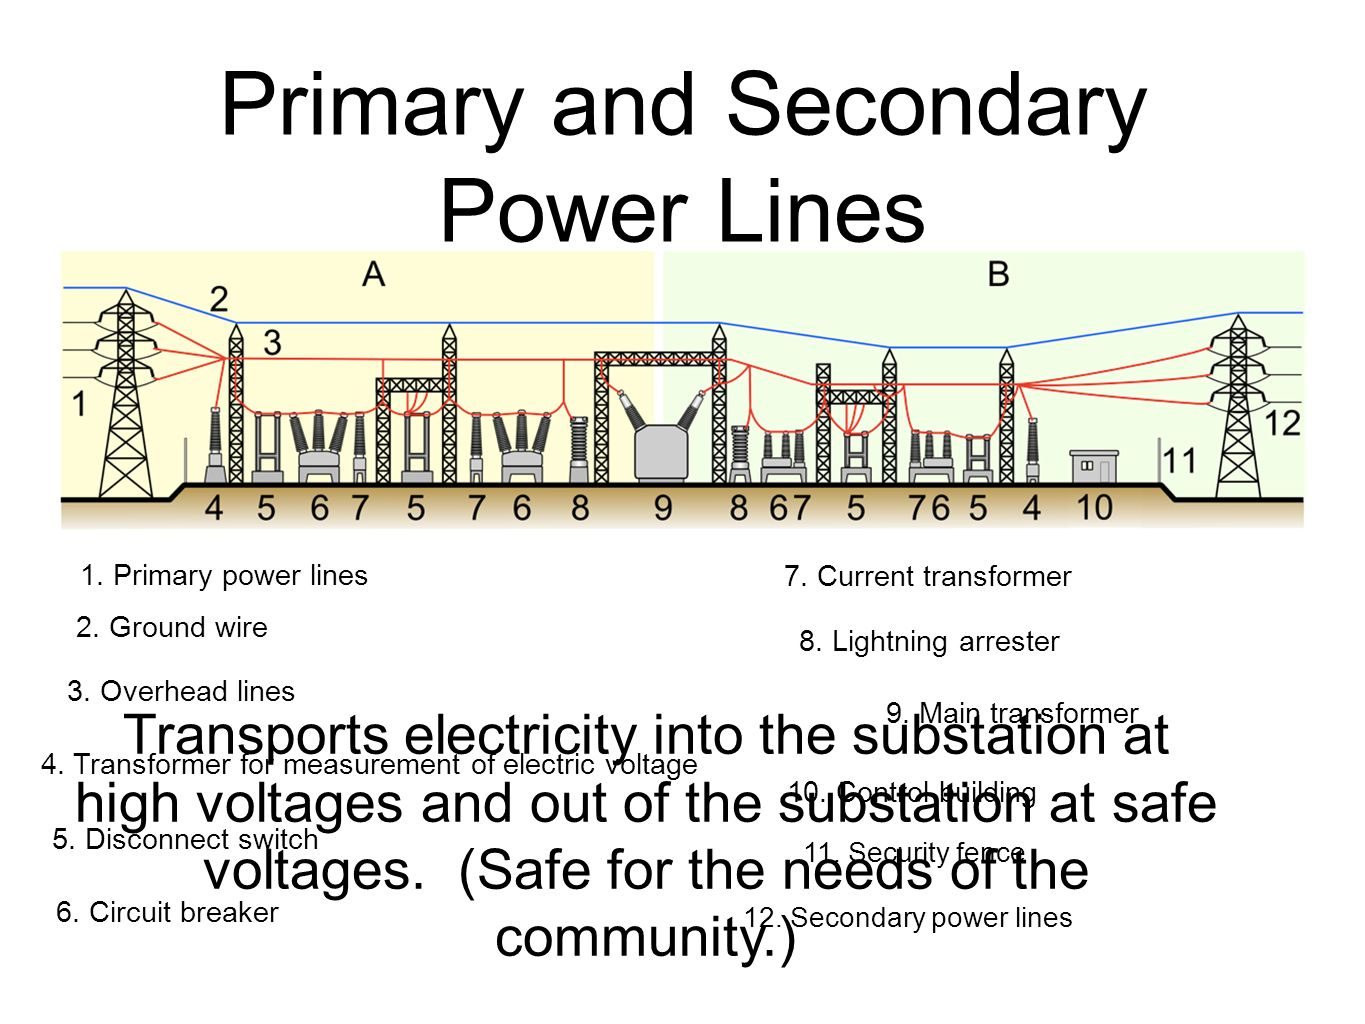 Primary and Secondary Power Lines